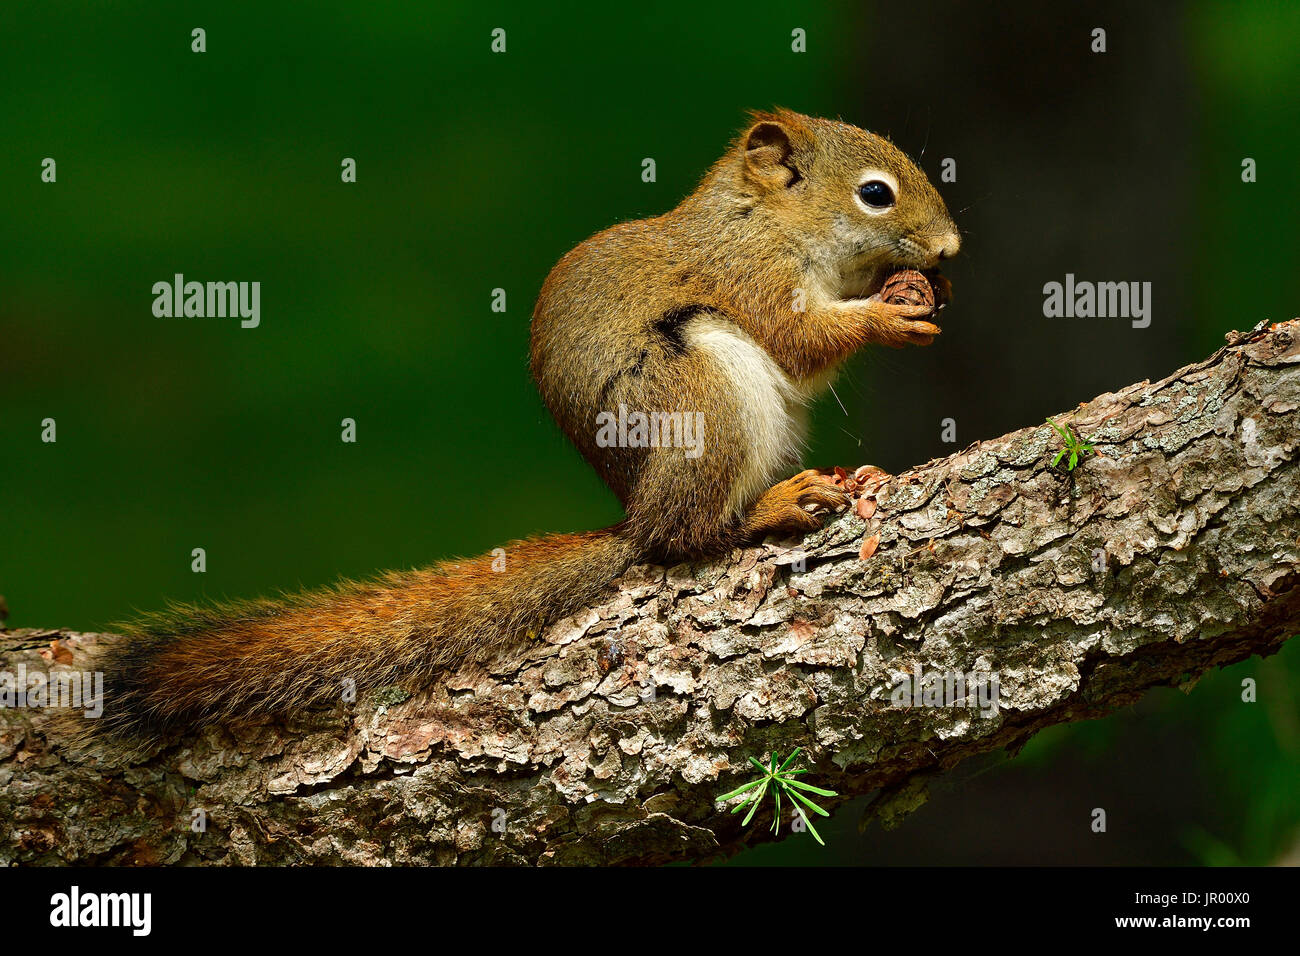 A Red Squirrel ( Tamiasciurus hudsonicus ); sitting on a tree branch holding a spruce cone between his paws. - Stock Image